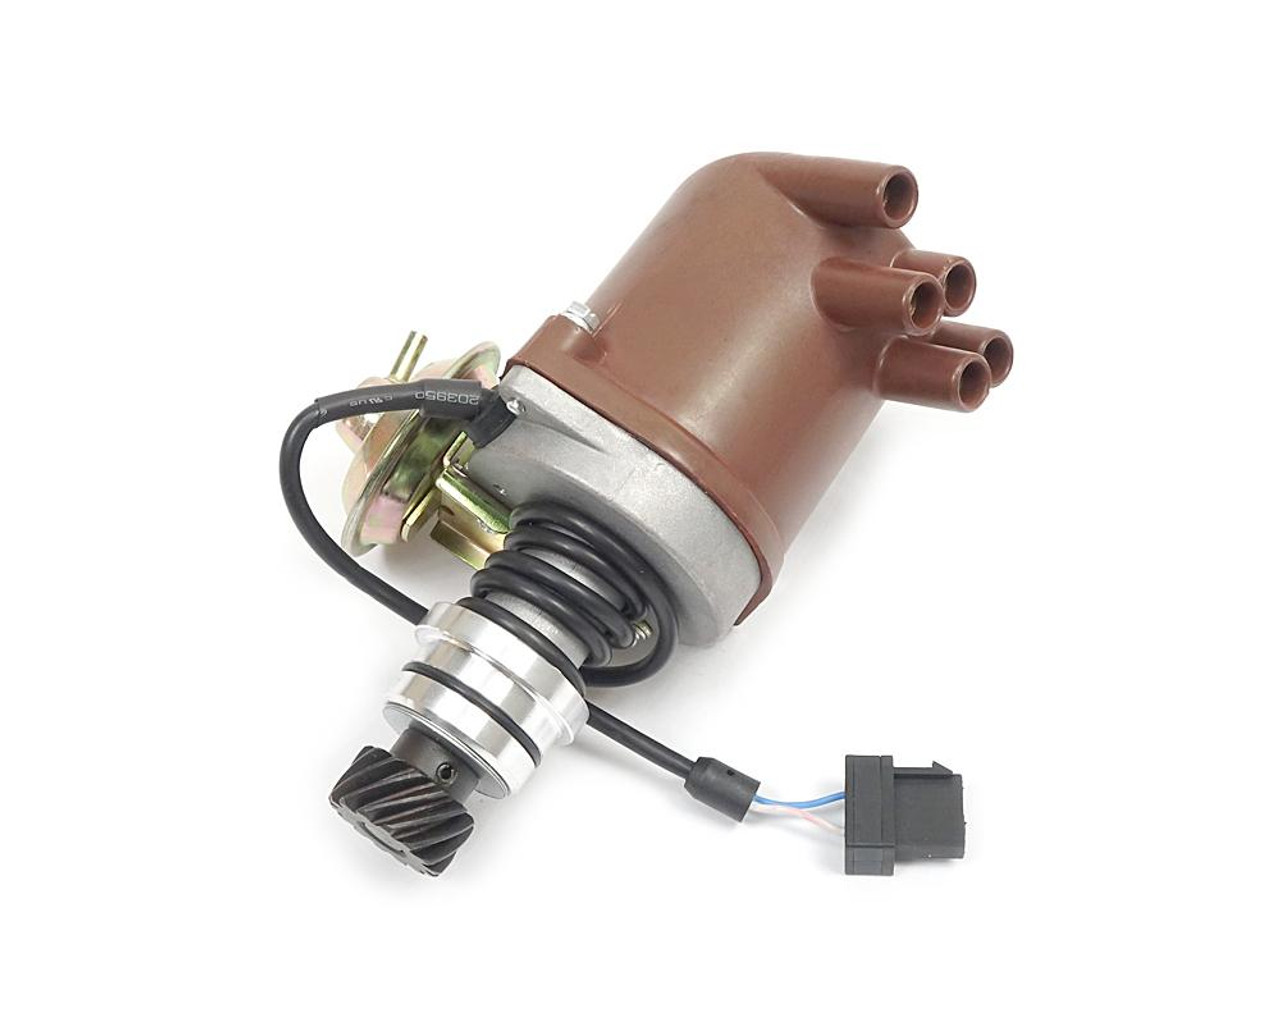 Auto Ricambi New Distributor - 1980-85 with Bosch Fuel Injection FIAT 124 Spider Parts